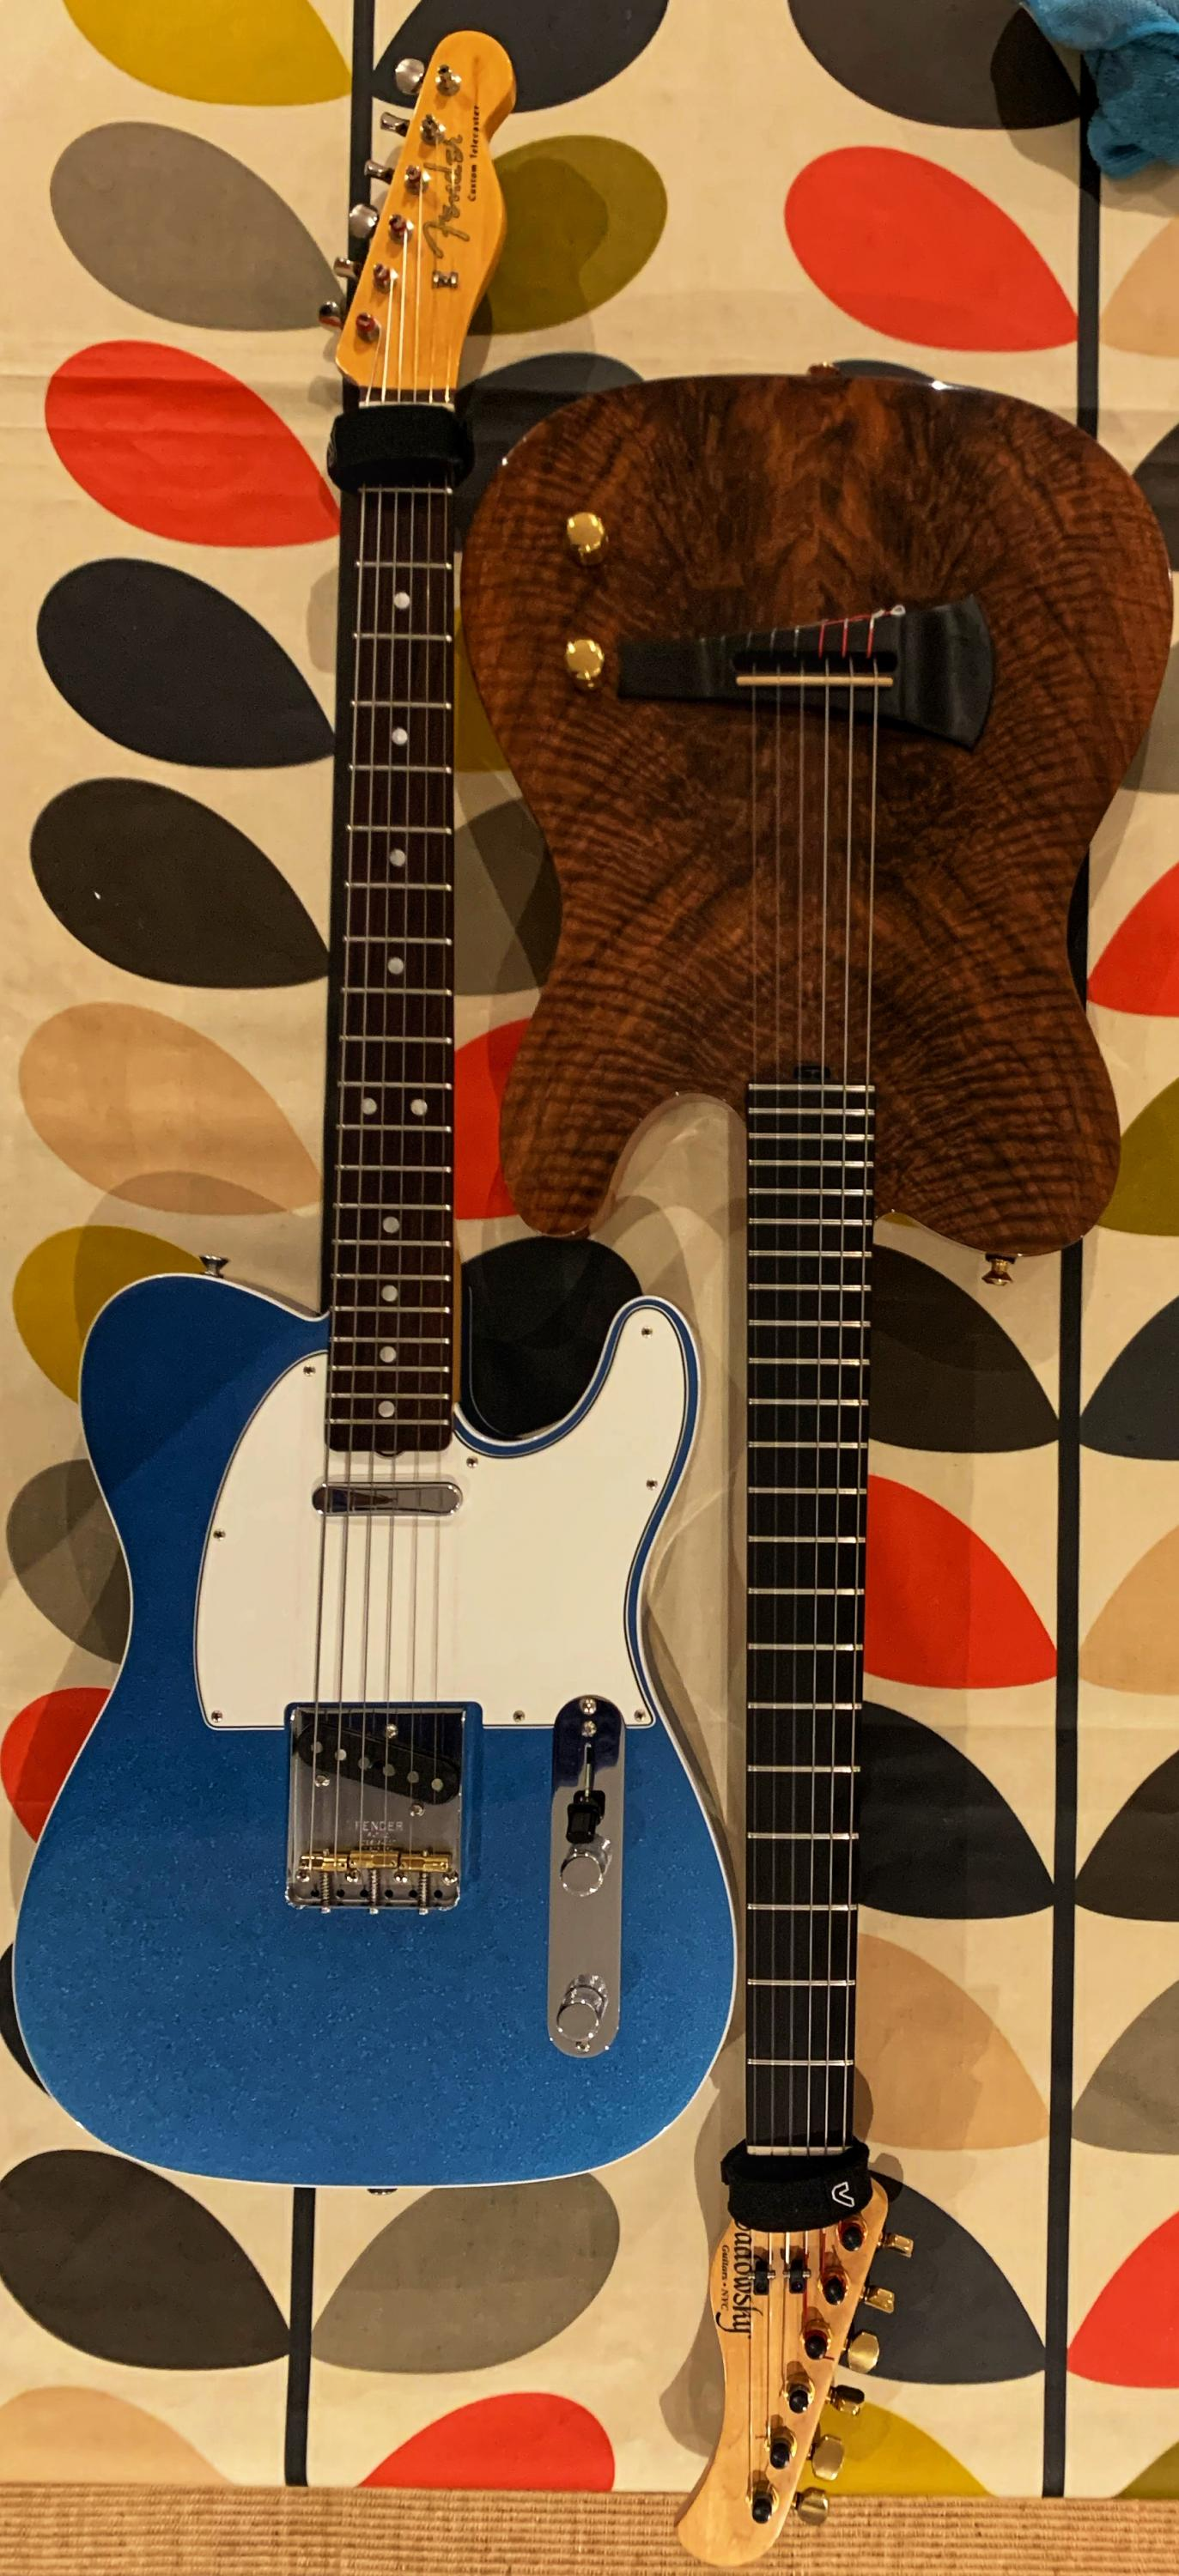 Telecaster Love Thread, No Archtops Allowed-0f771b09-4f35-4c9f-a6c7-c527cc25f17a-jpg